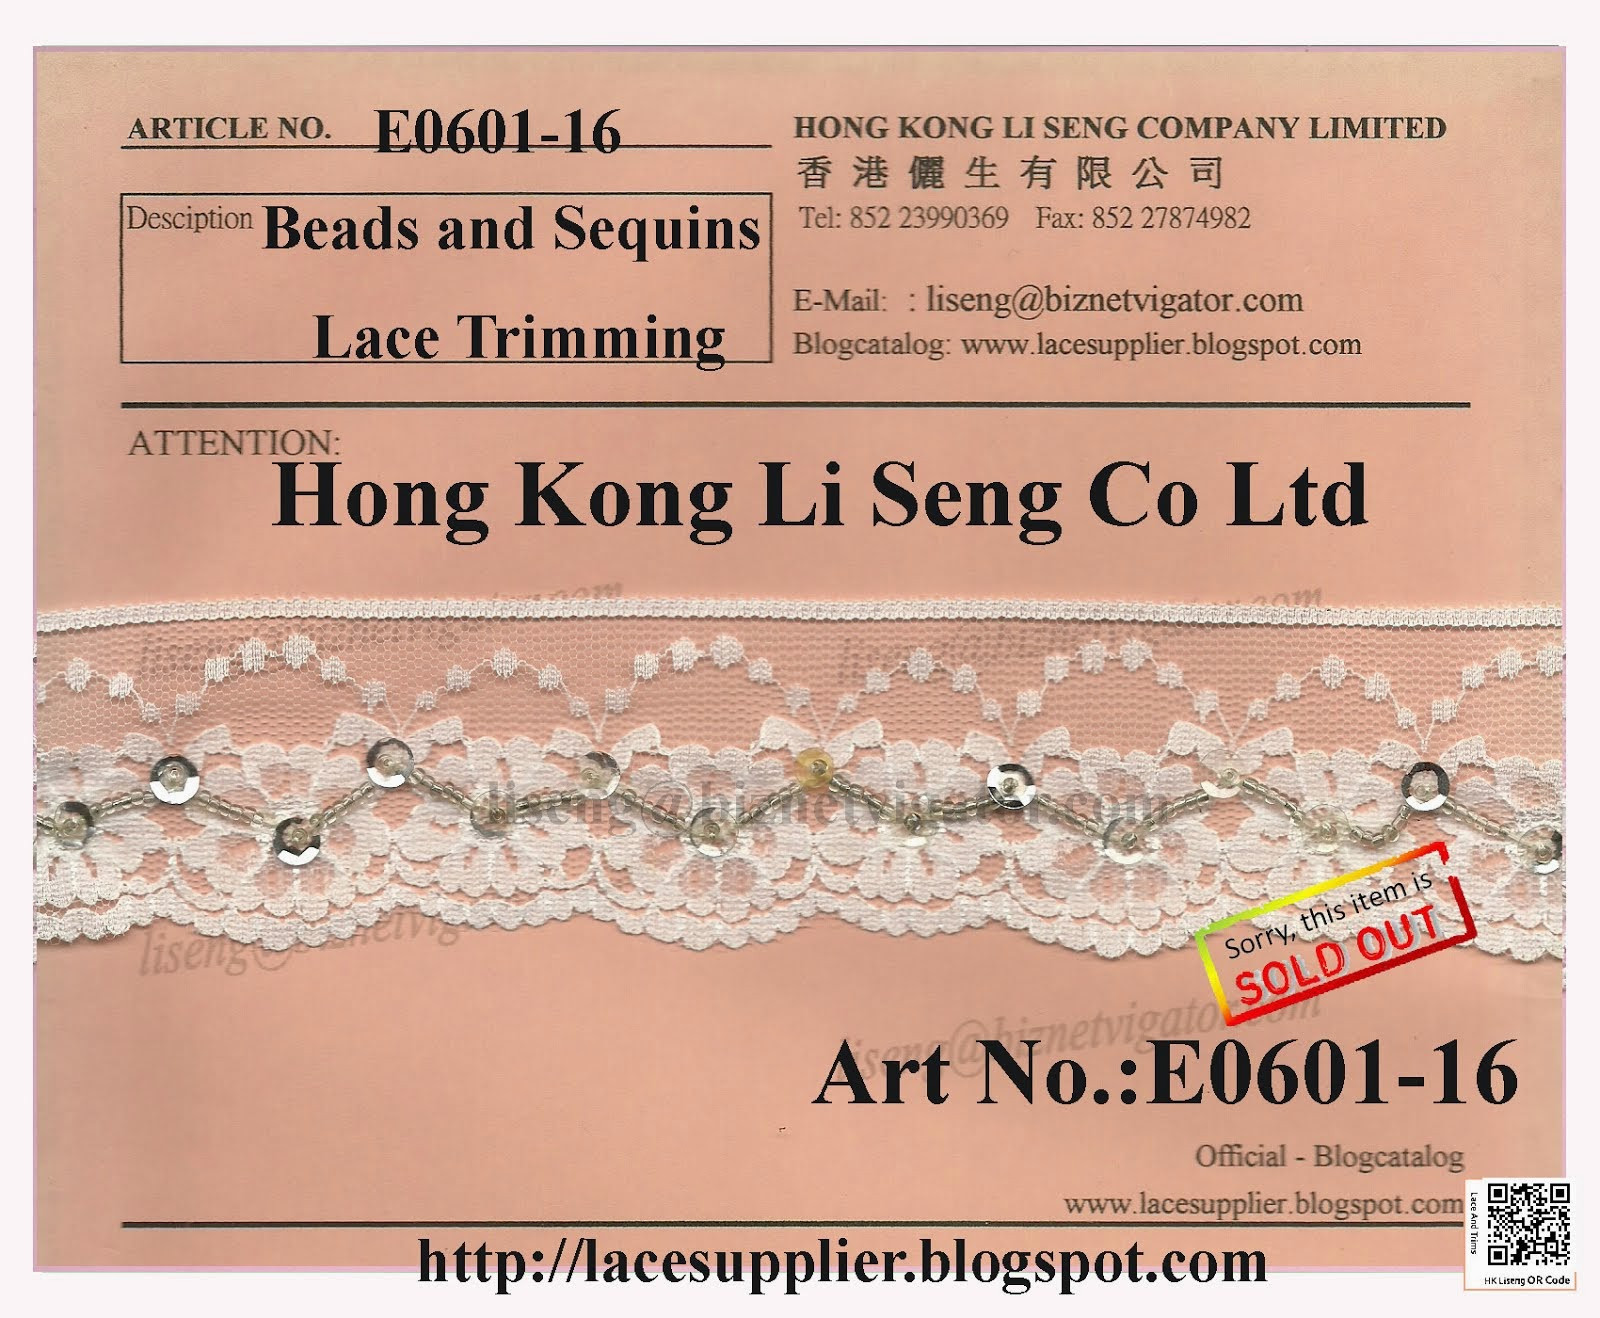 Beads and Sequins Lace Trims Manufacturer - Hong Kong Li Seng Co Ltd